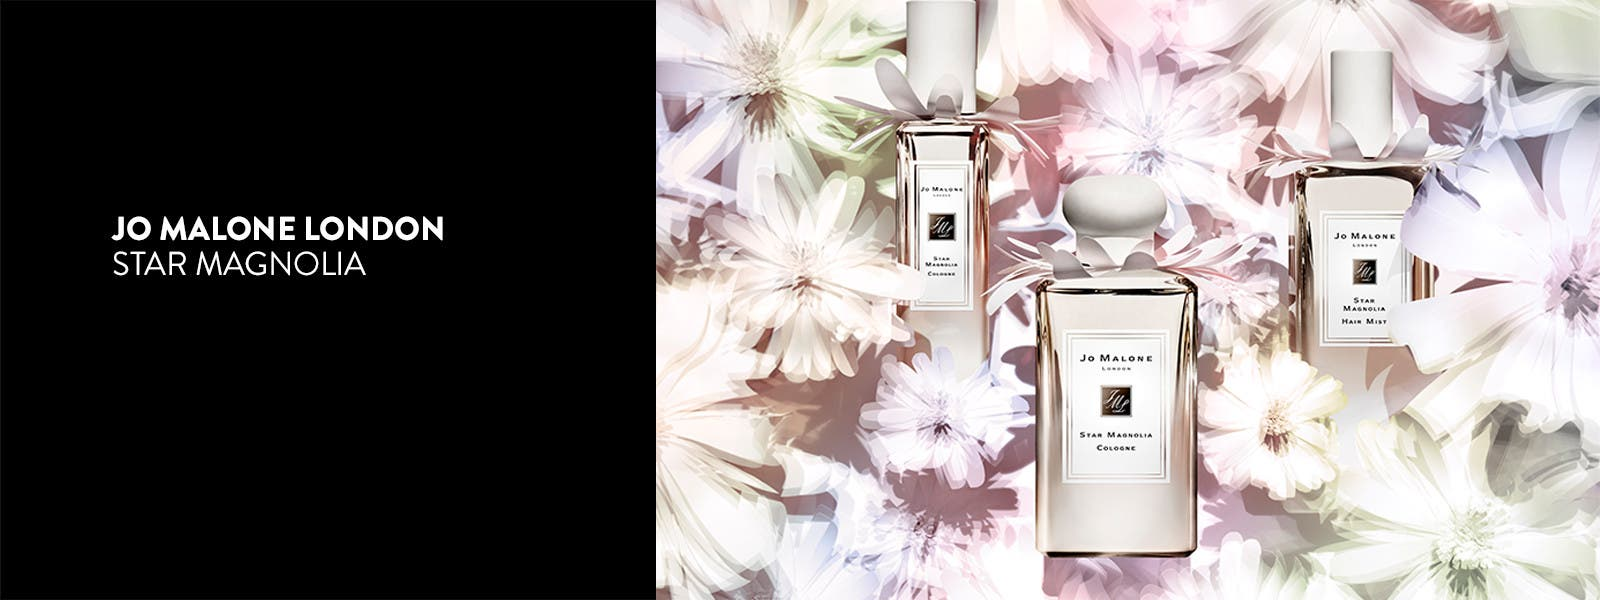 Jo Malone London: Star Magnolia.